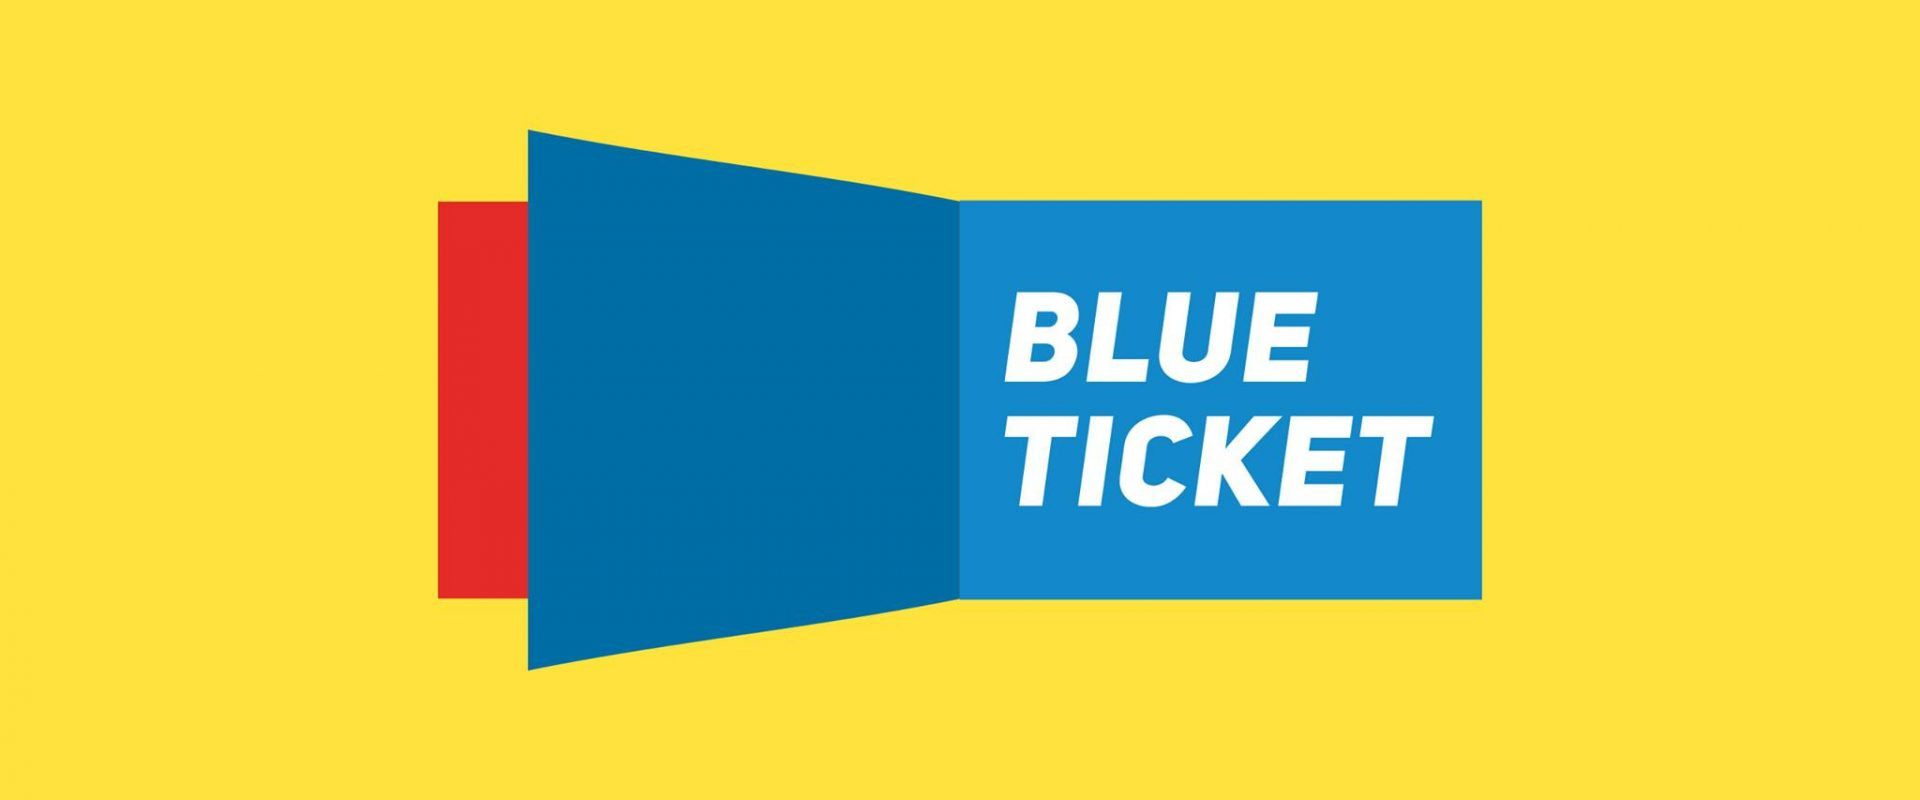 blueticket